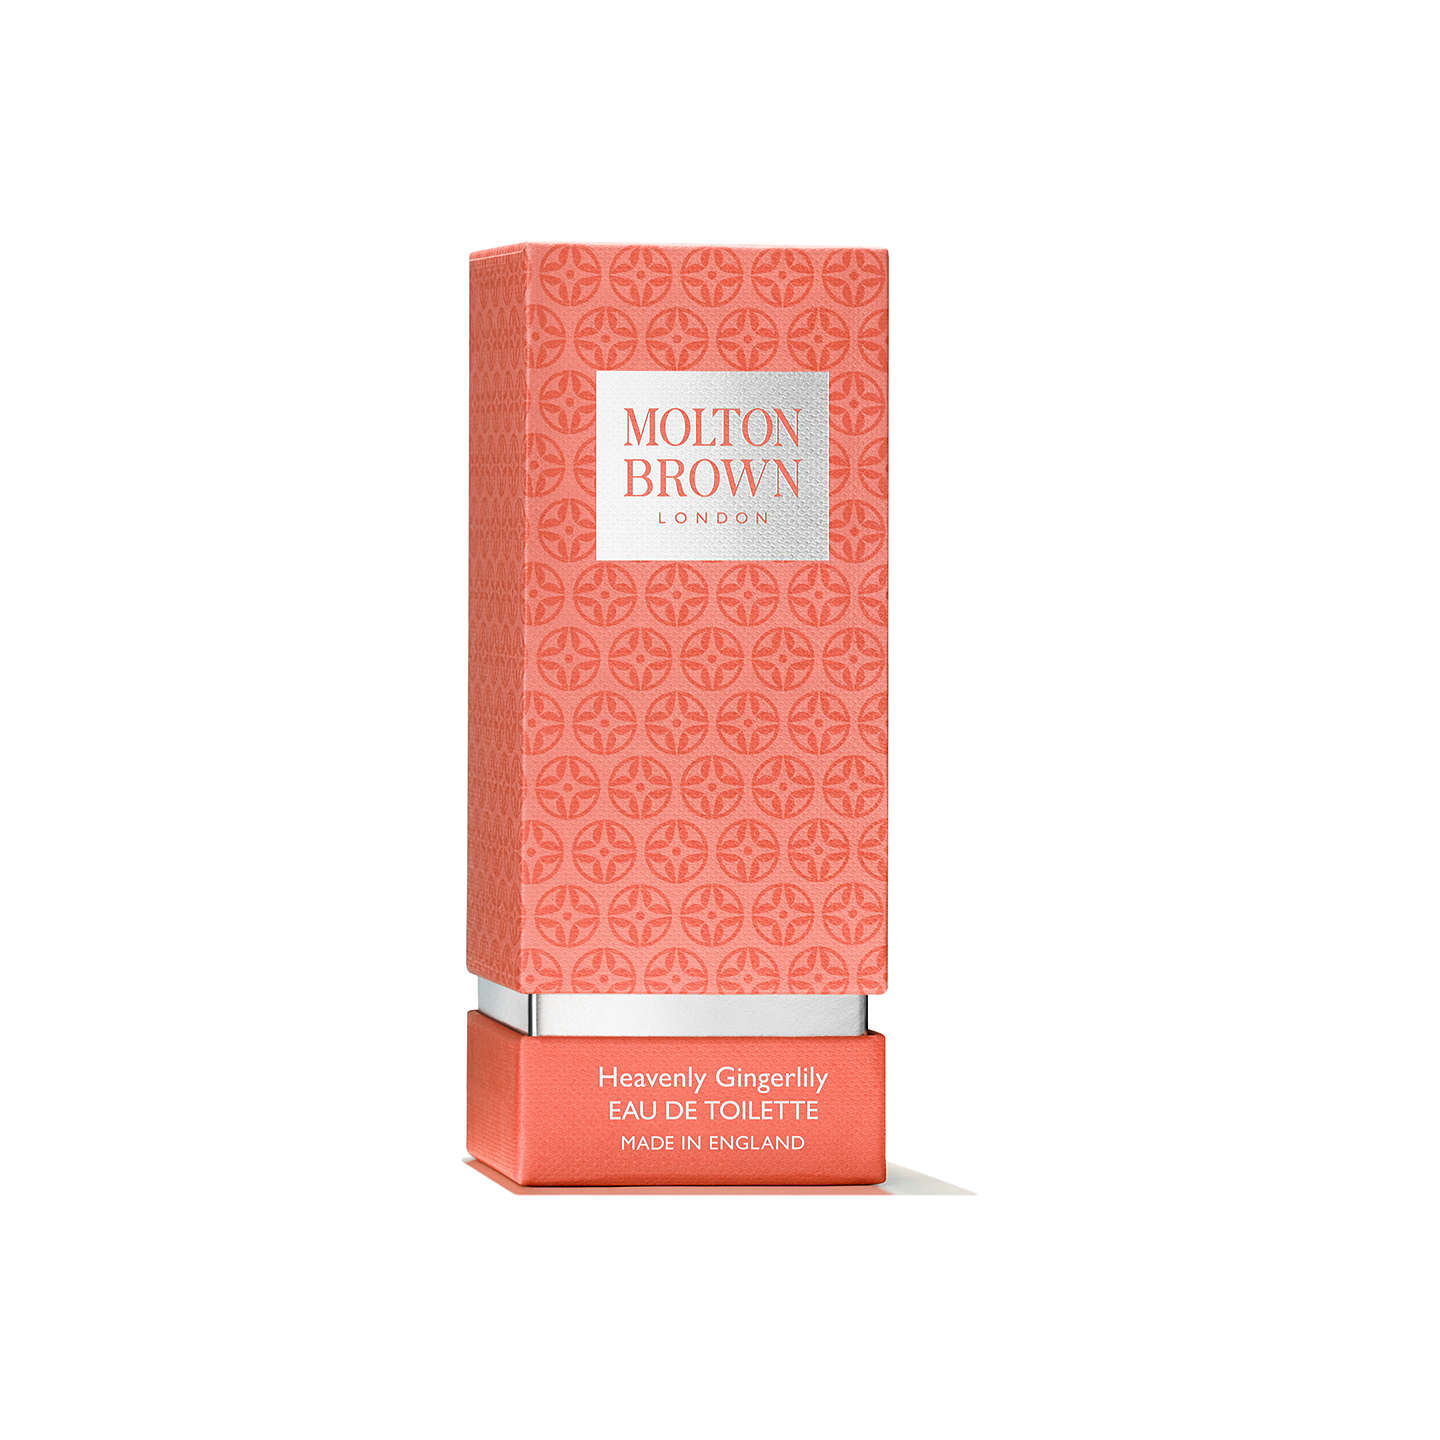 BuyMolton Brown Heavenly Gingerlily Eau de Toilette, 50ml Online at johnlewis.com